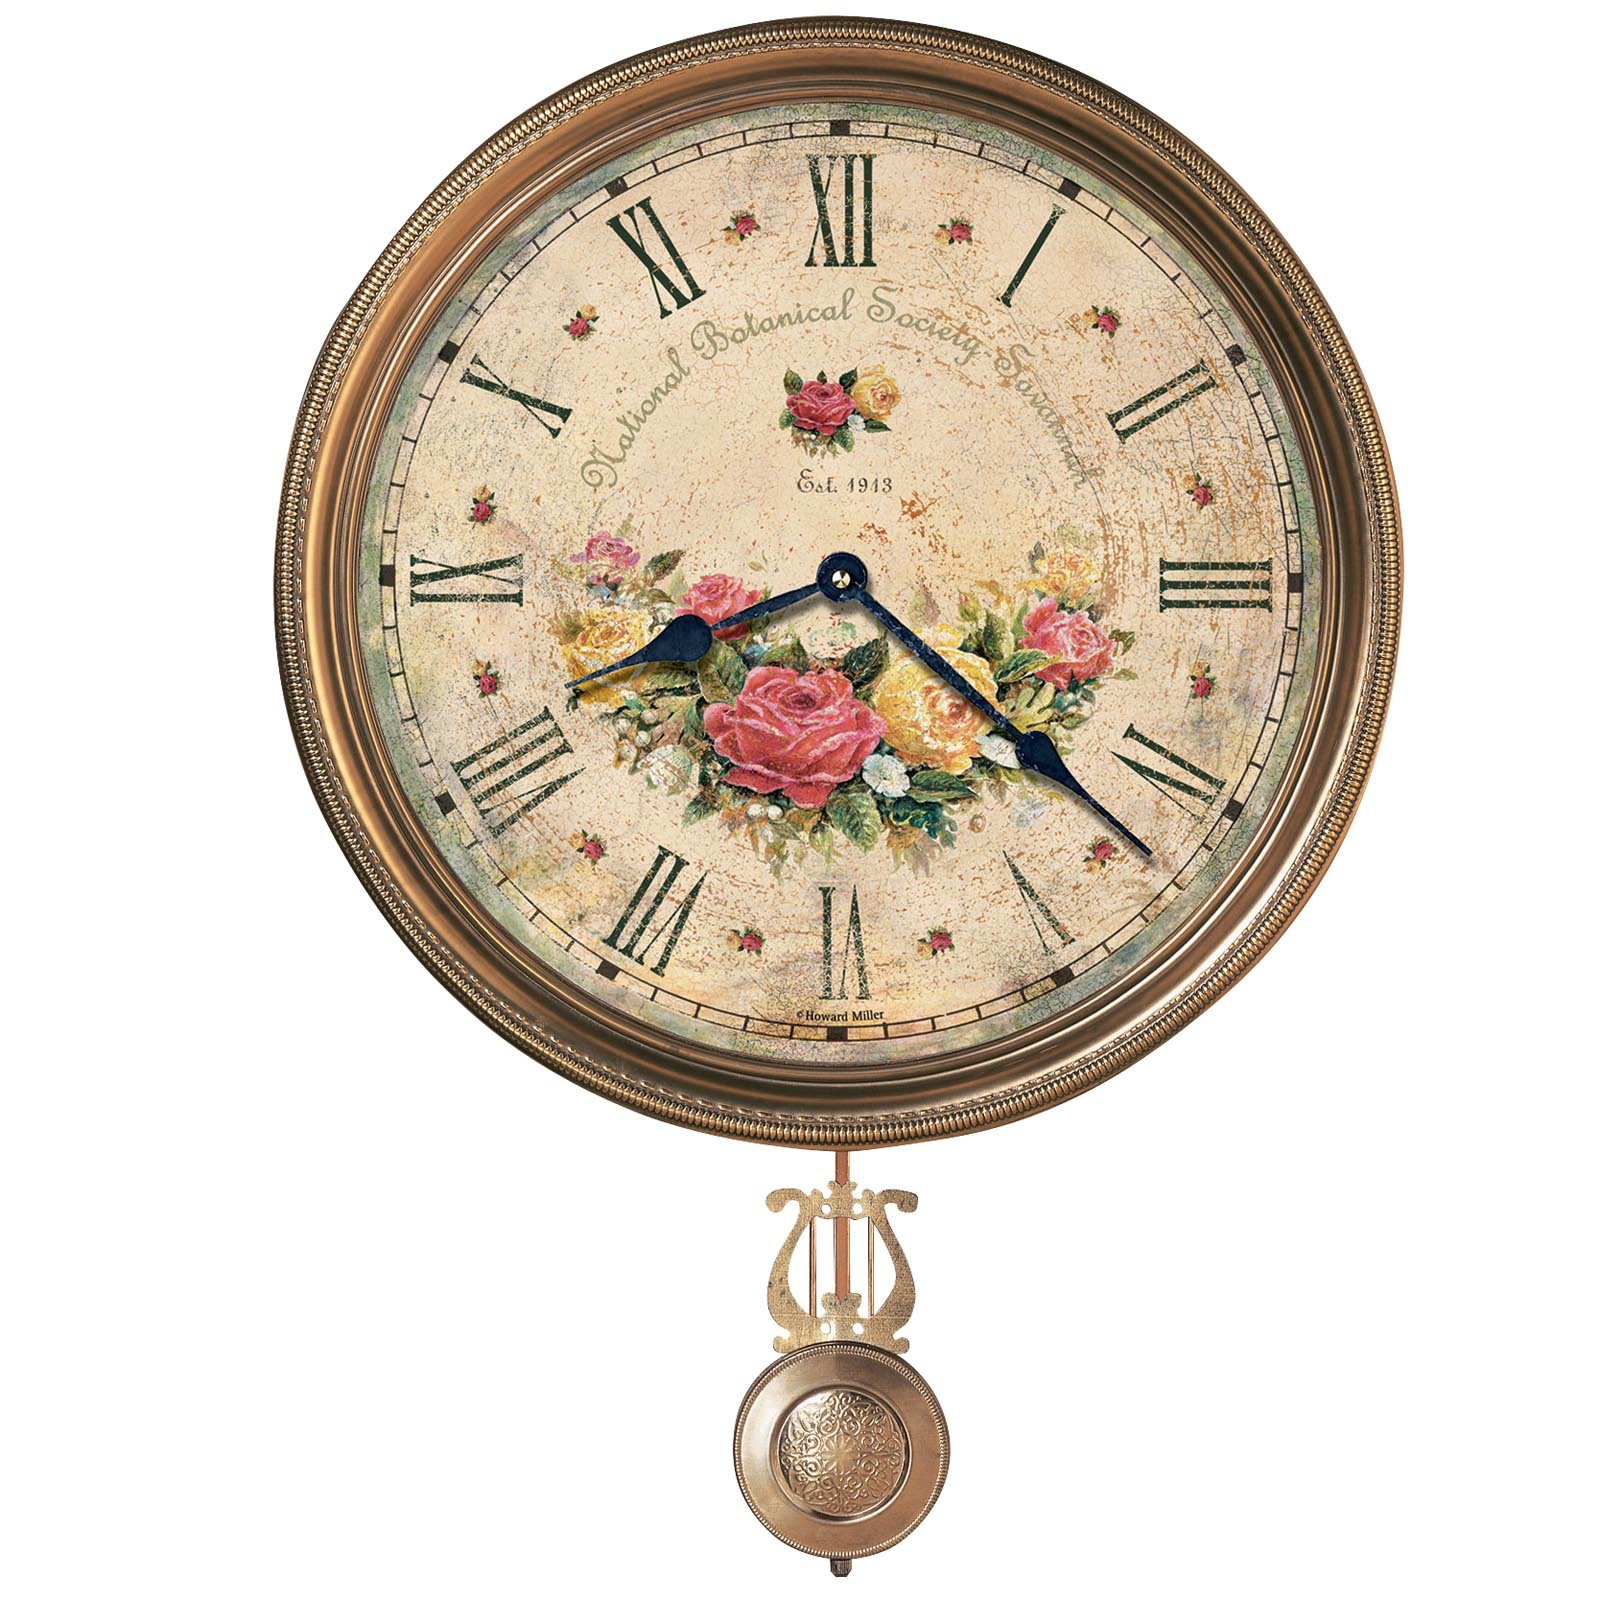 Howard Miller Savannah Botanical VII Wall Clock - 15 in. Wide